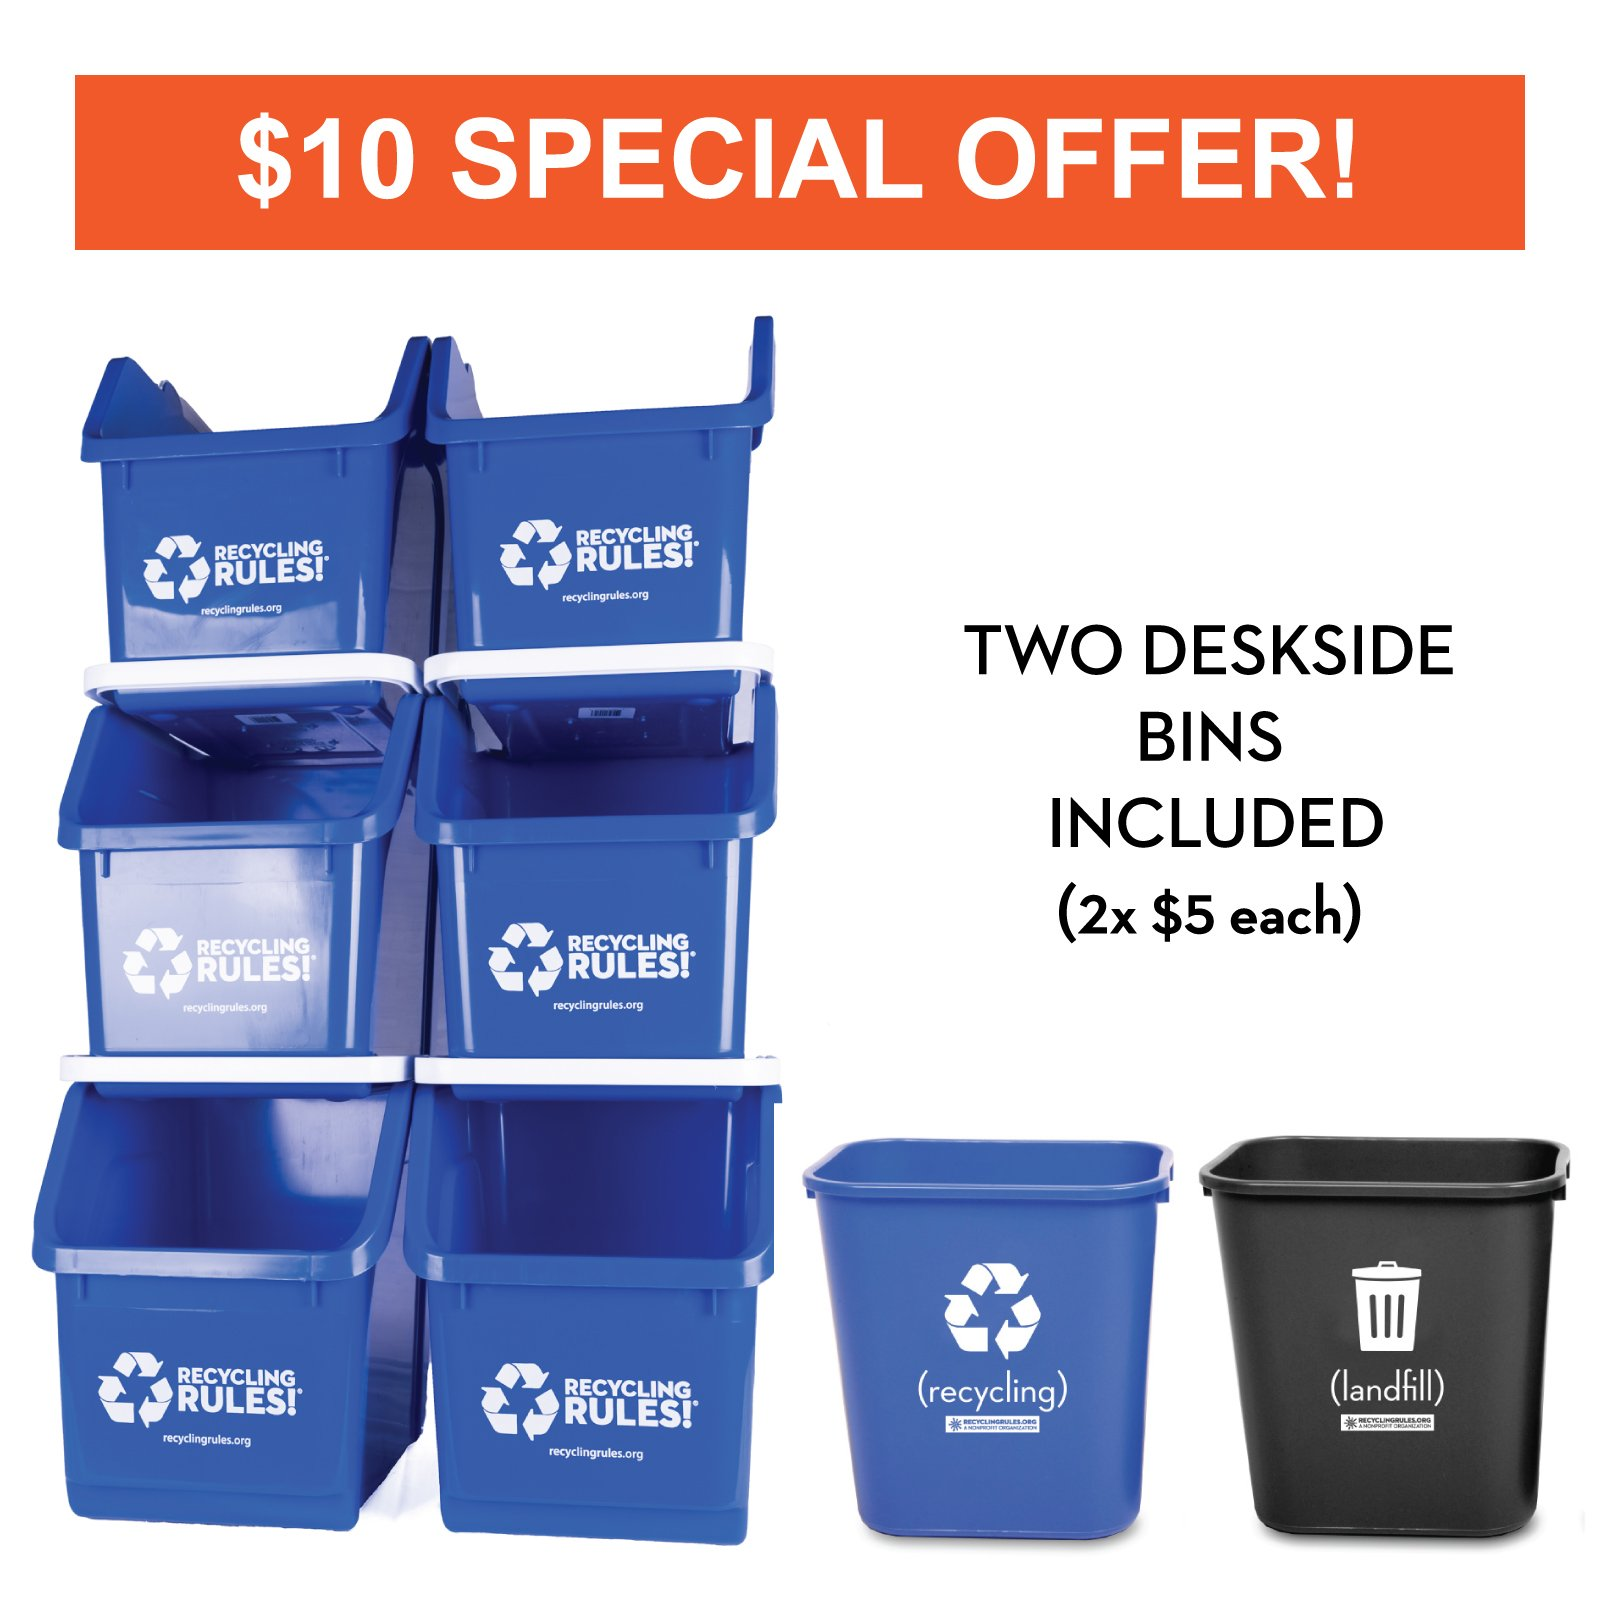 Blue Stackable Recycling Bin Container with Handle 6 Gallon - 6 Pack of Bins + 2 Deskside Bins